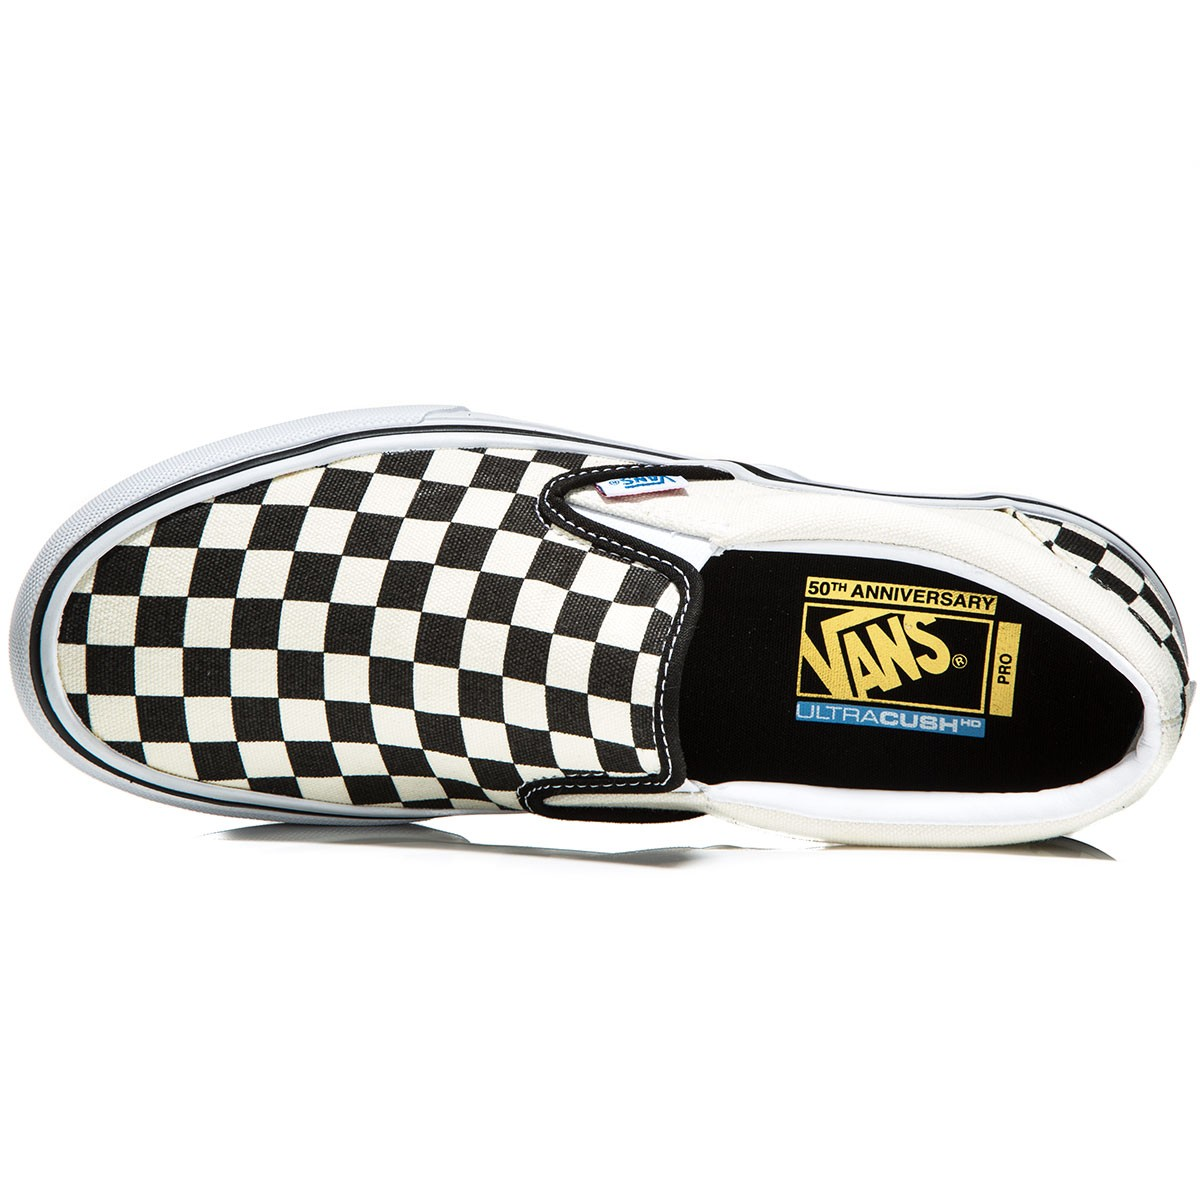 c346aa5a4c9 Vans Slip-On Pro Shoes